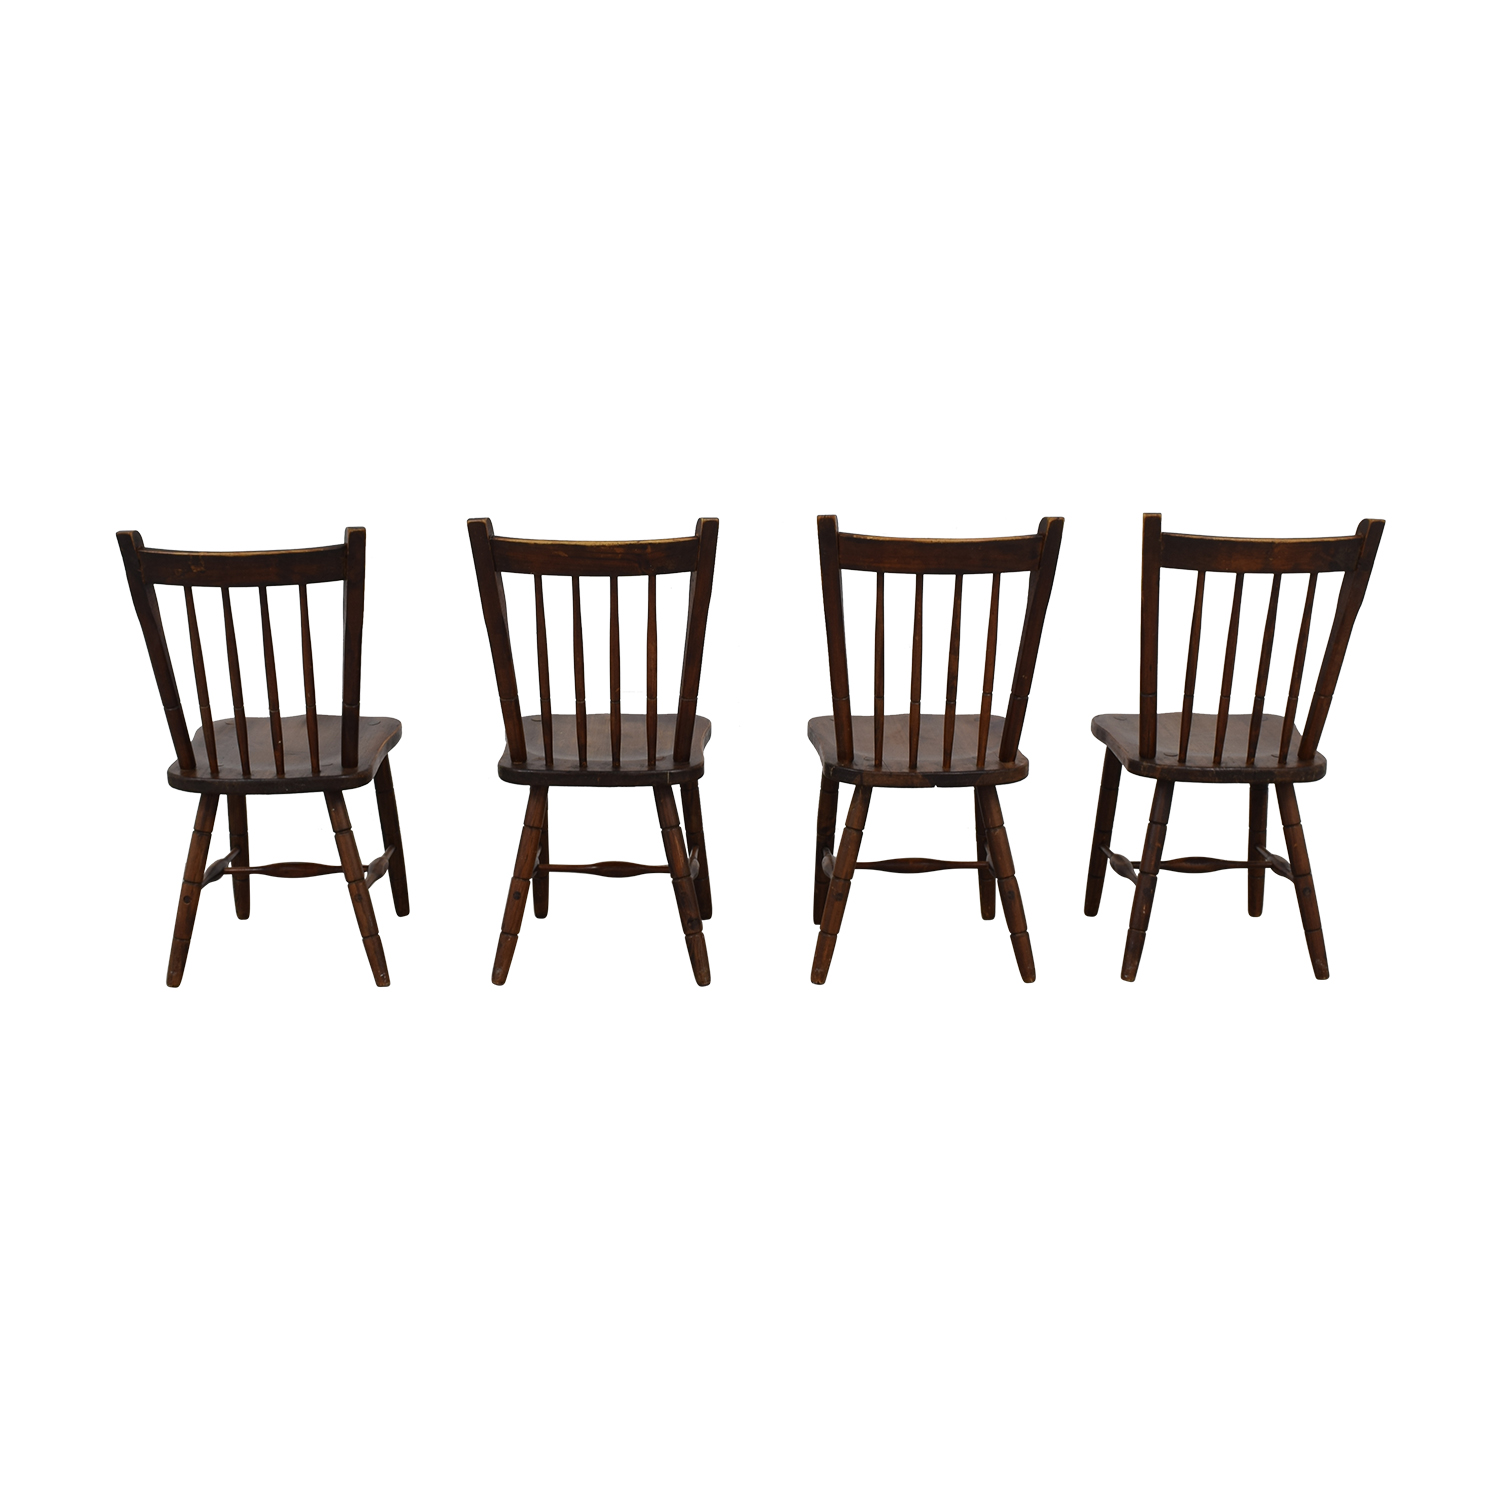 Authentic South African Pine Dining Chairs used